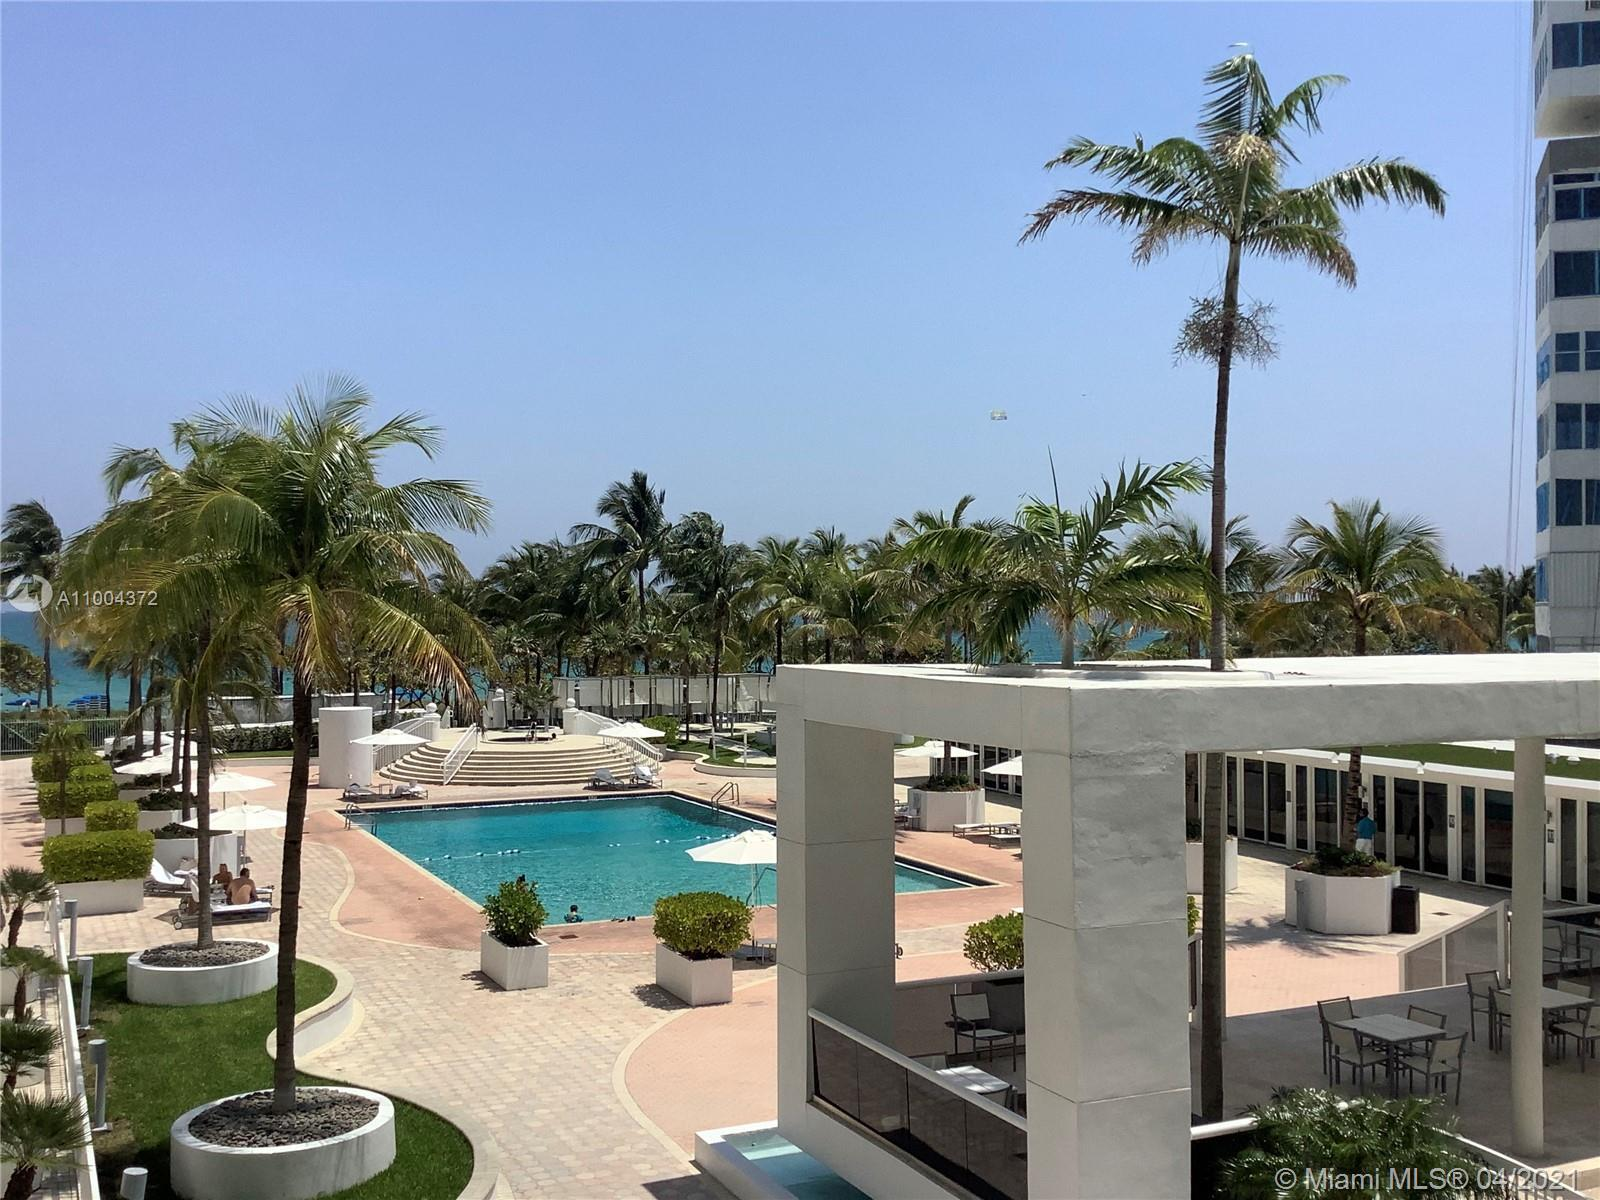 Spectacular direct ocean, beach, and pool view from this spacious 2 bedroom/2 bathroom apartment wit